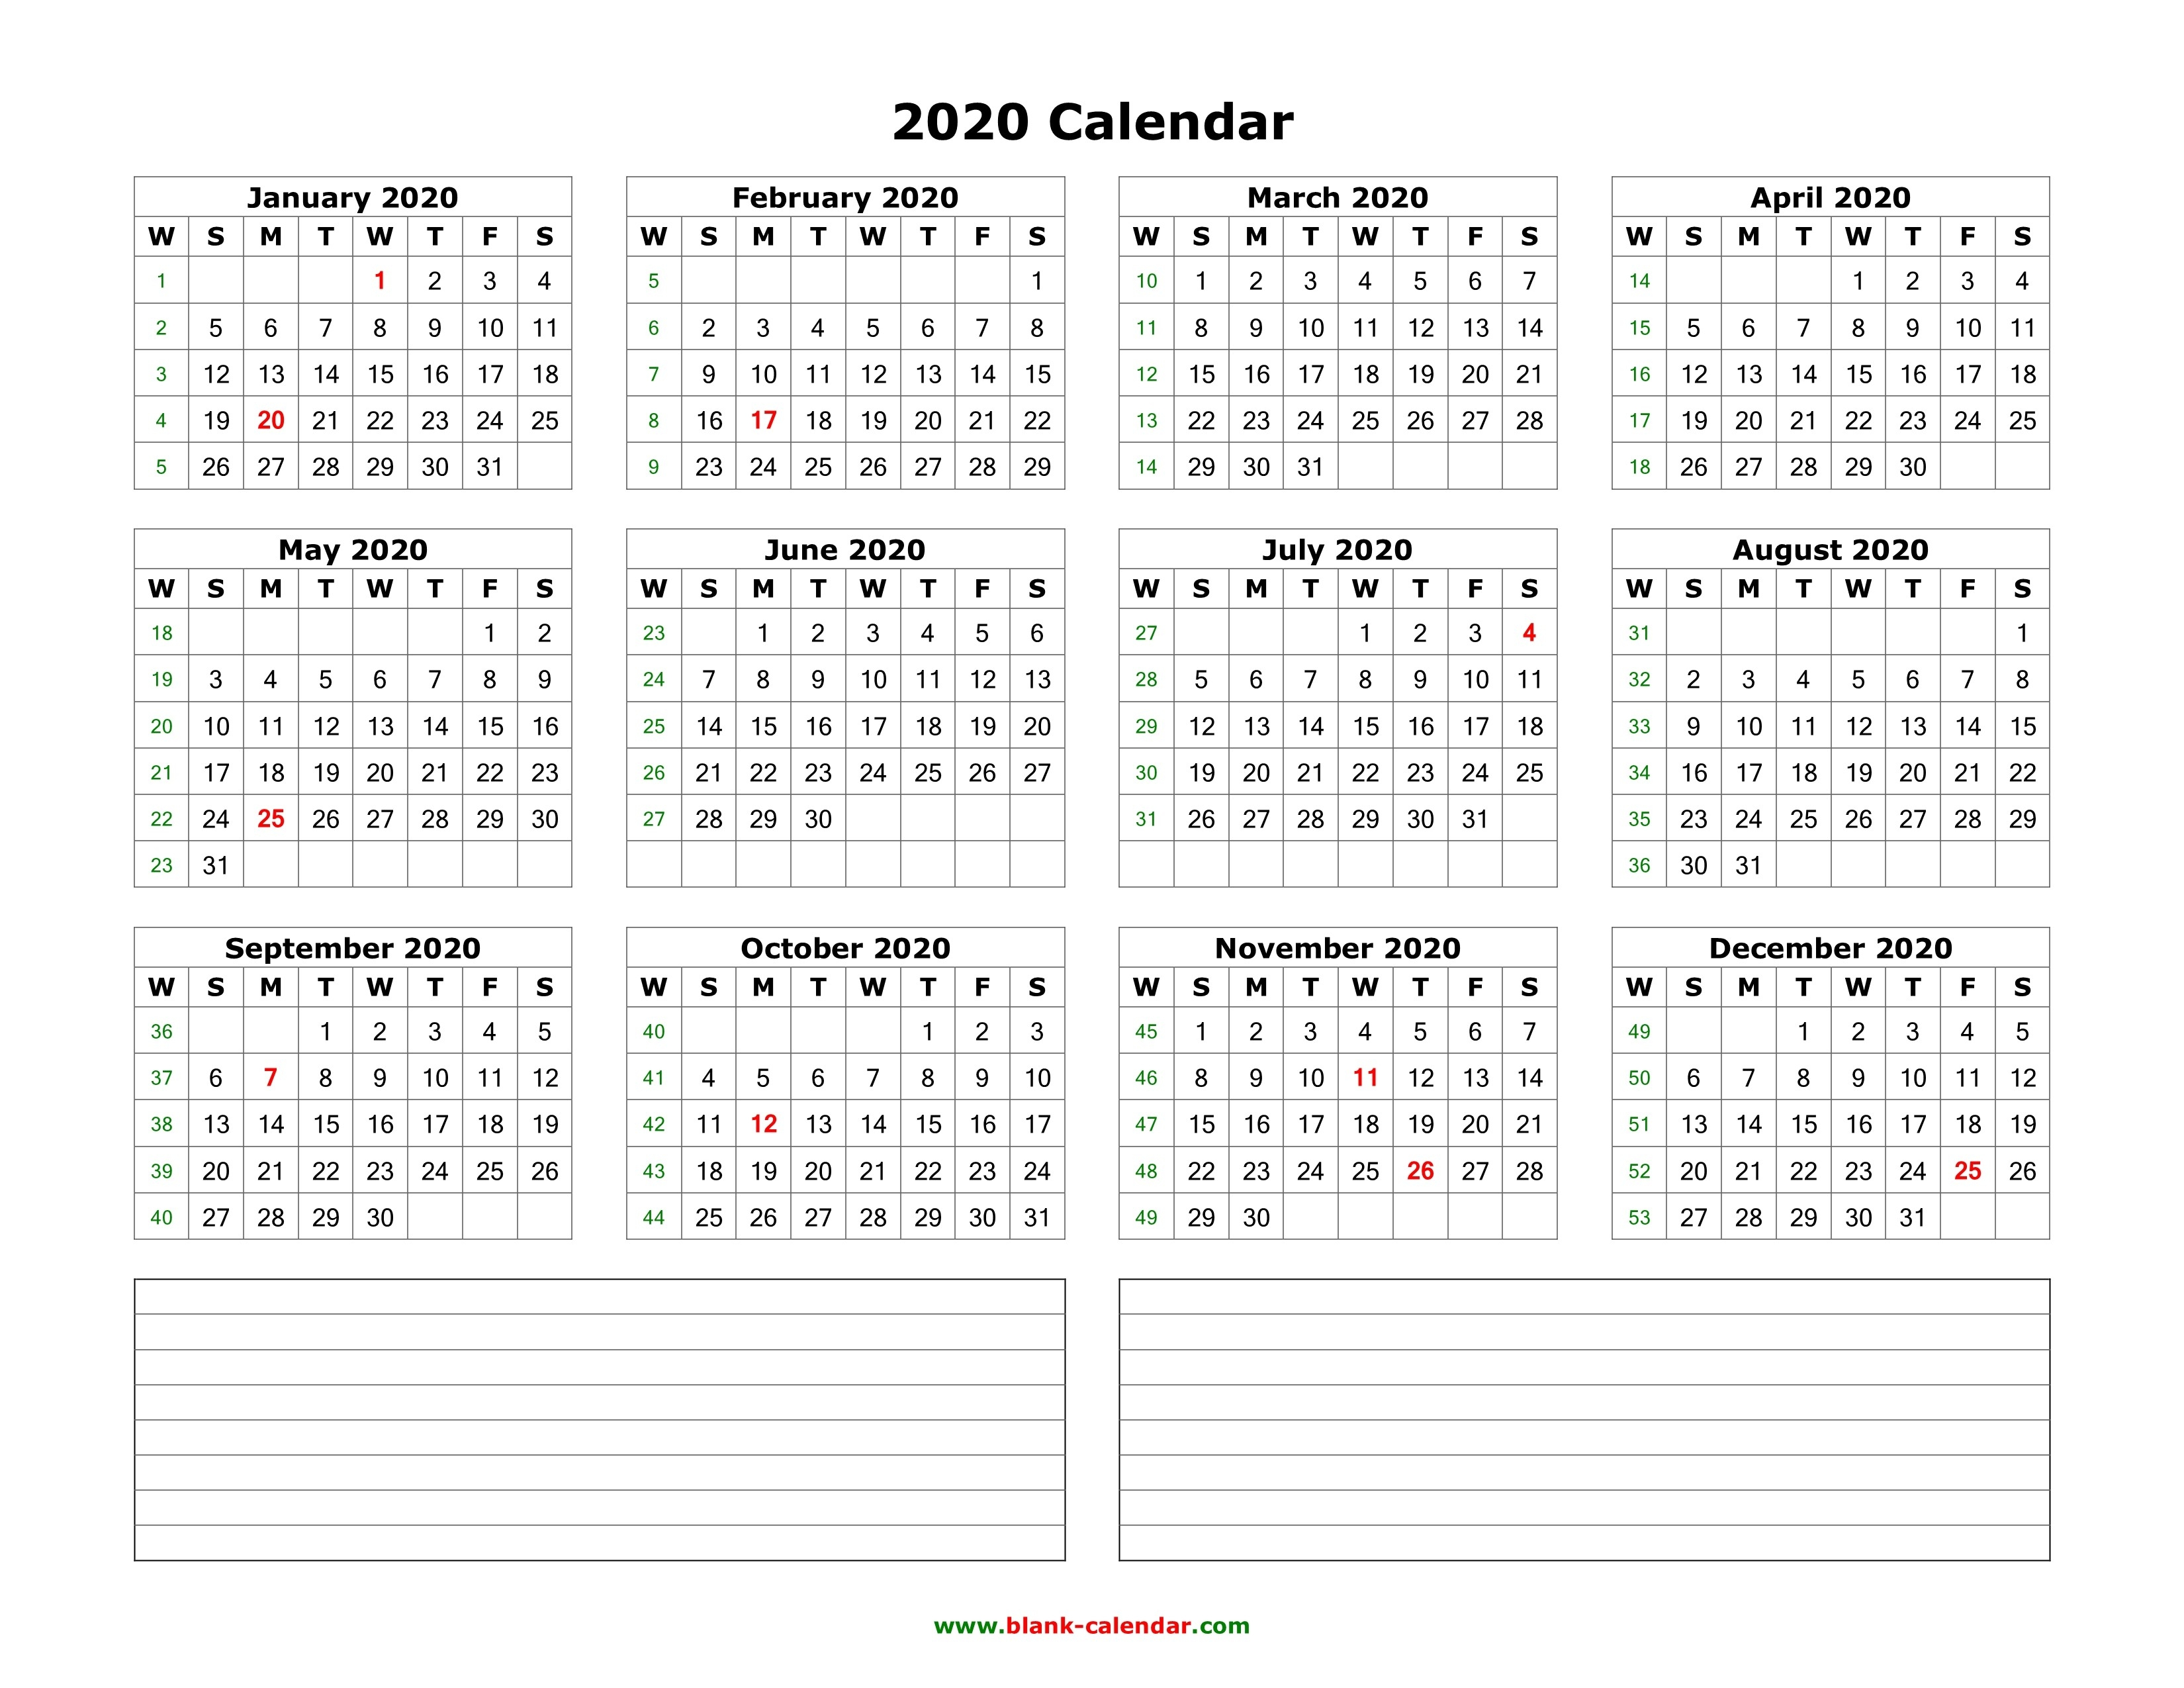 Download Blank Calendar 2020 With Space For Notes (12 Months-Blank 2 Pages Calendar 2020